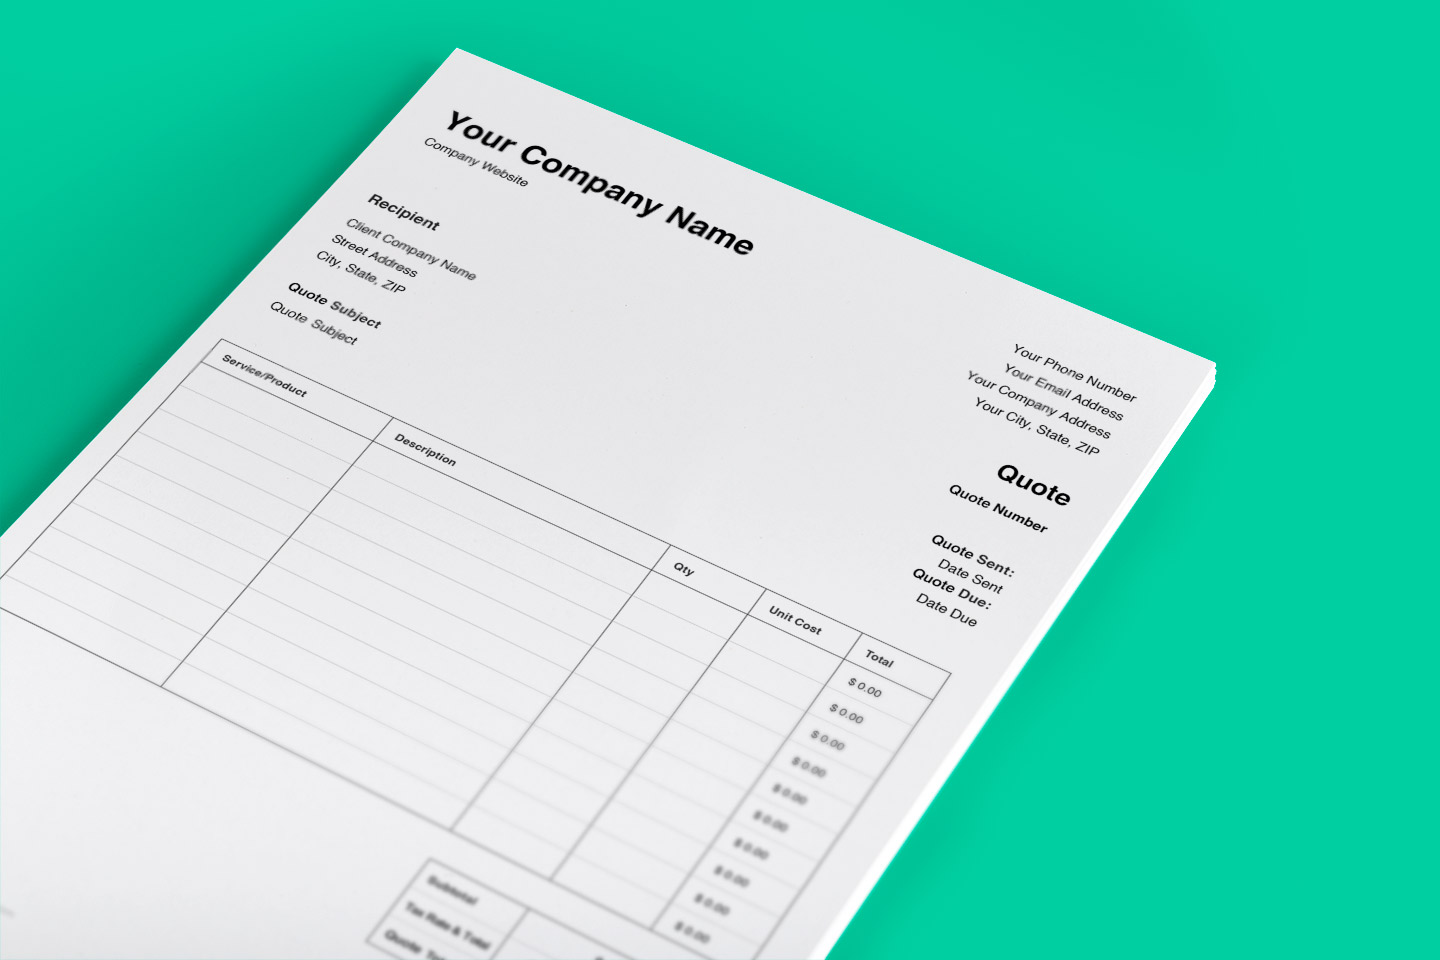 Free quote template. This cost estimate tool can be customized to your business